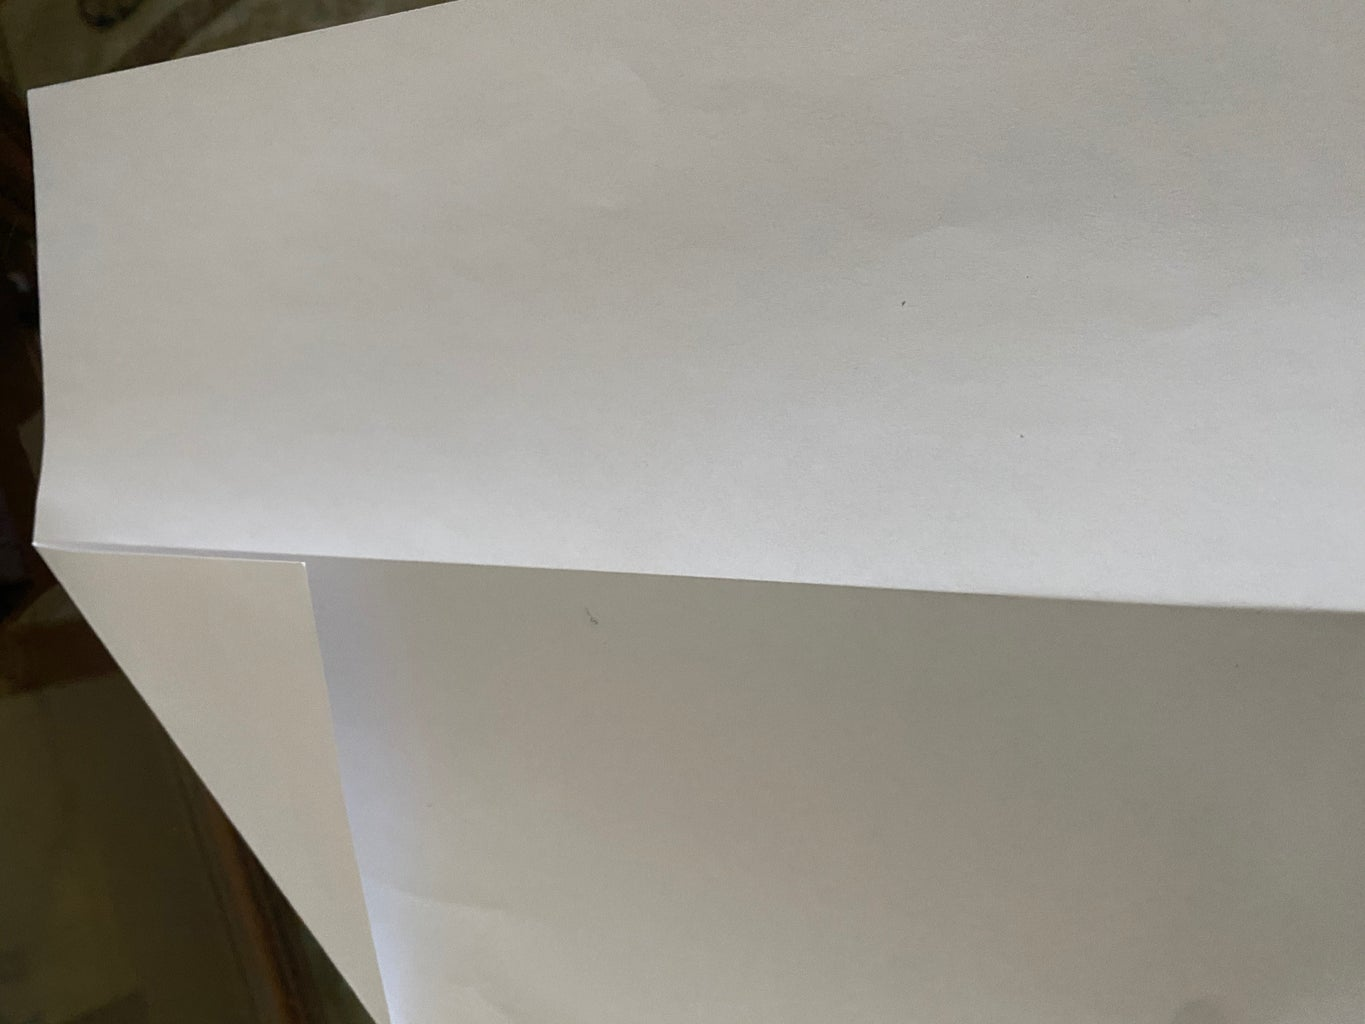 Step 2: Unfold the Paper and Fold the Corner